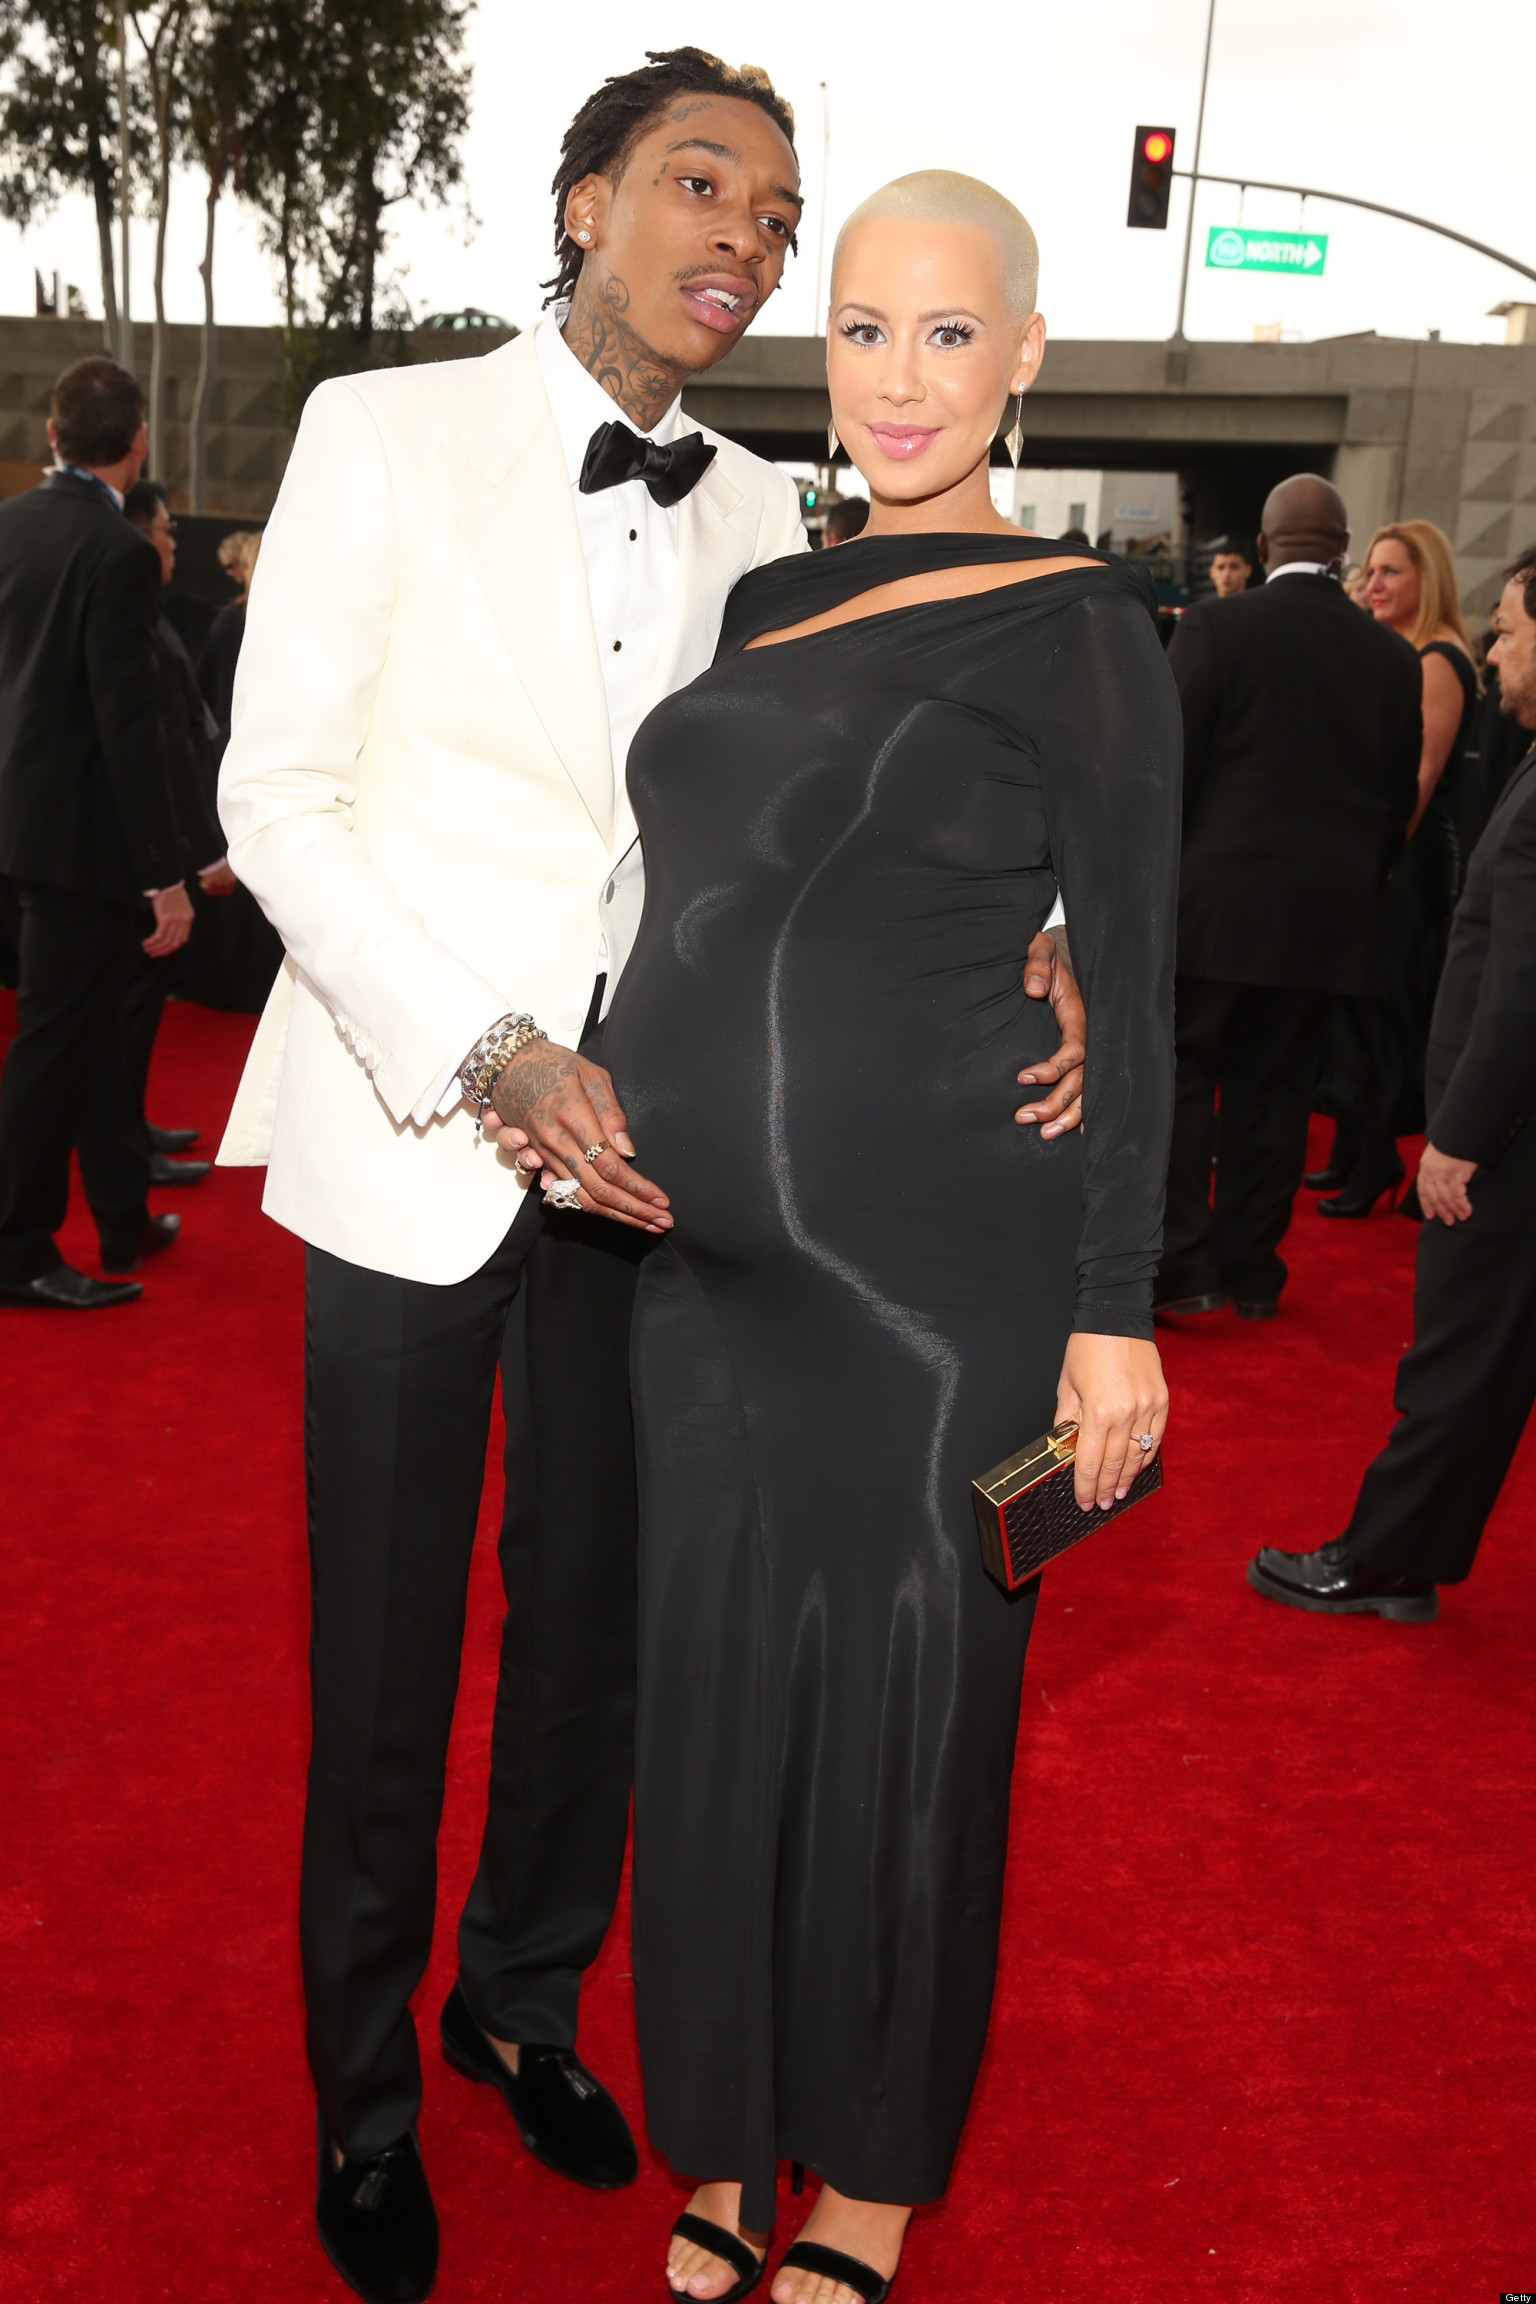 Baby Car Shade >> Amber Rose Grammys 2013: Singer Shows Major Baby Bump On ...